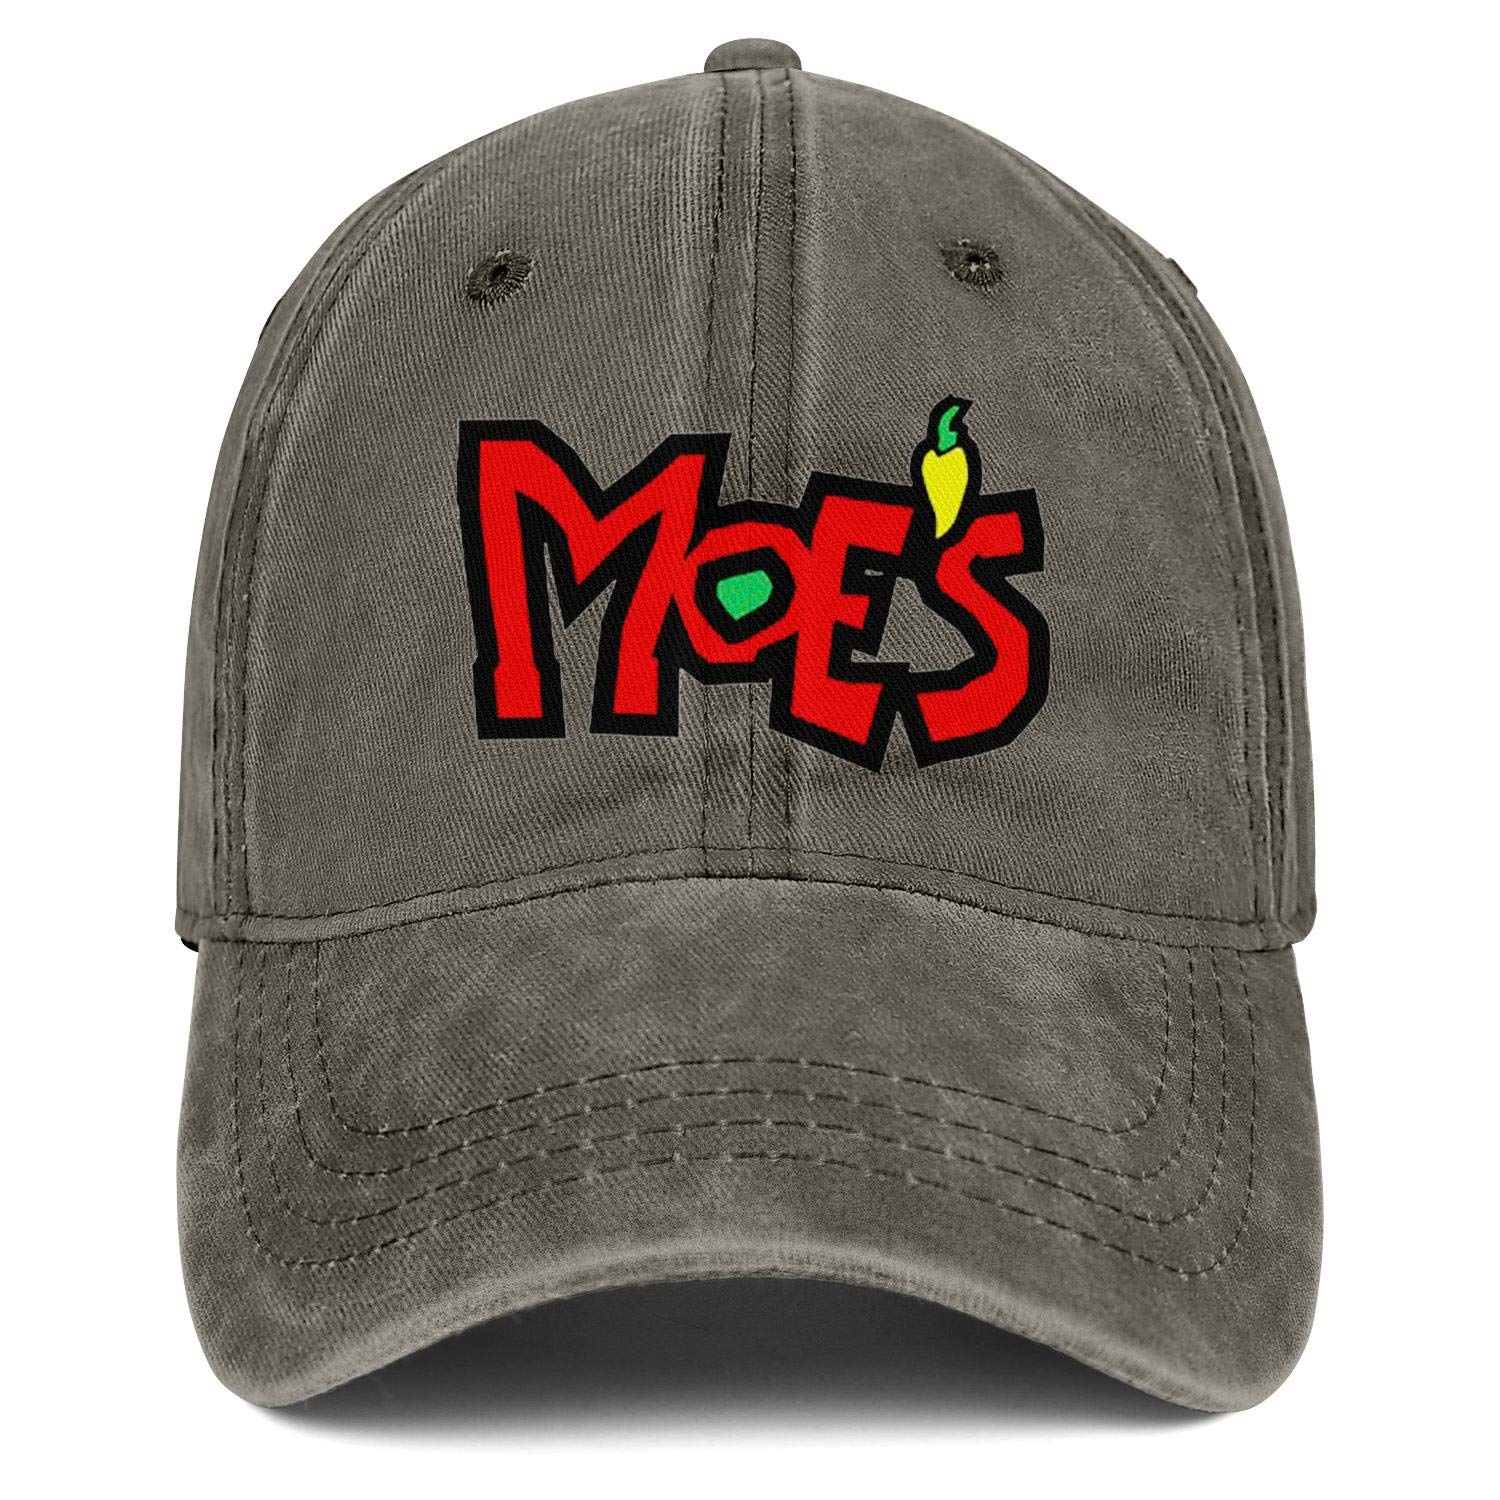 WintyHC Moes Southwest Grill Cowboy Hat Dad Hat Adjustable Fits Baseball Cap